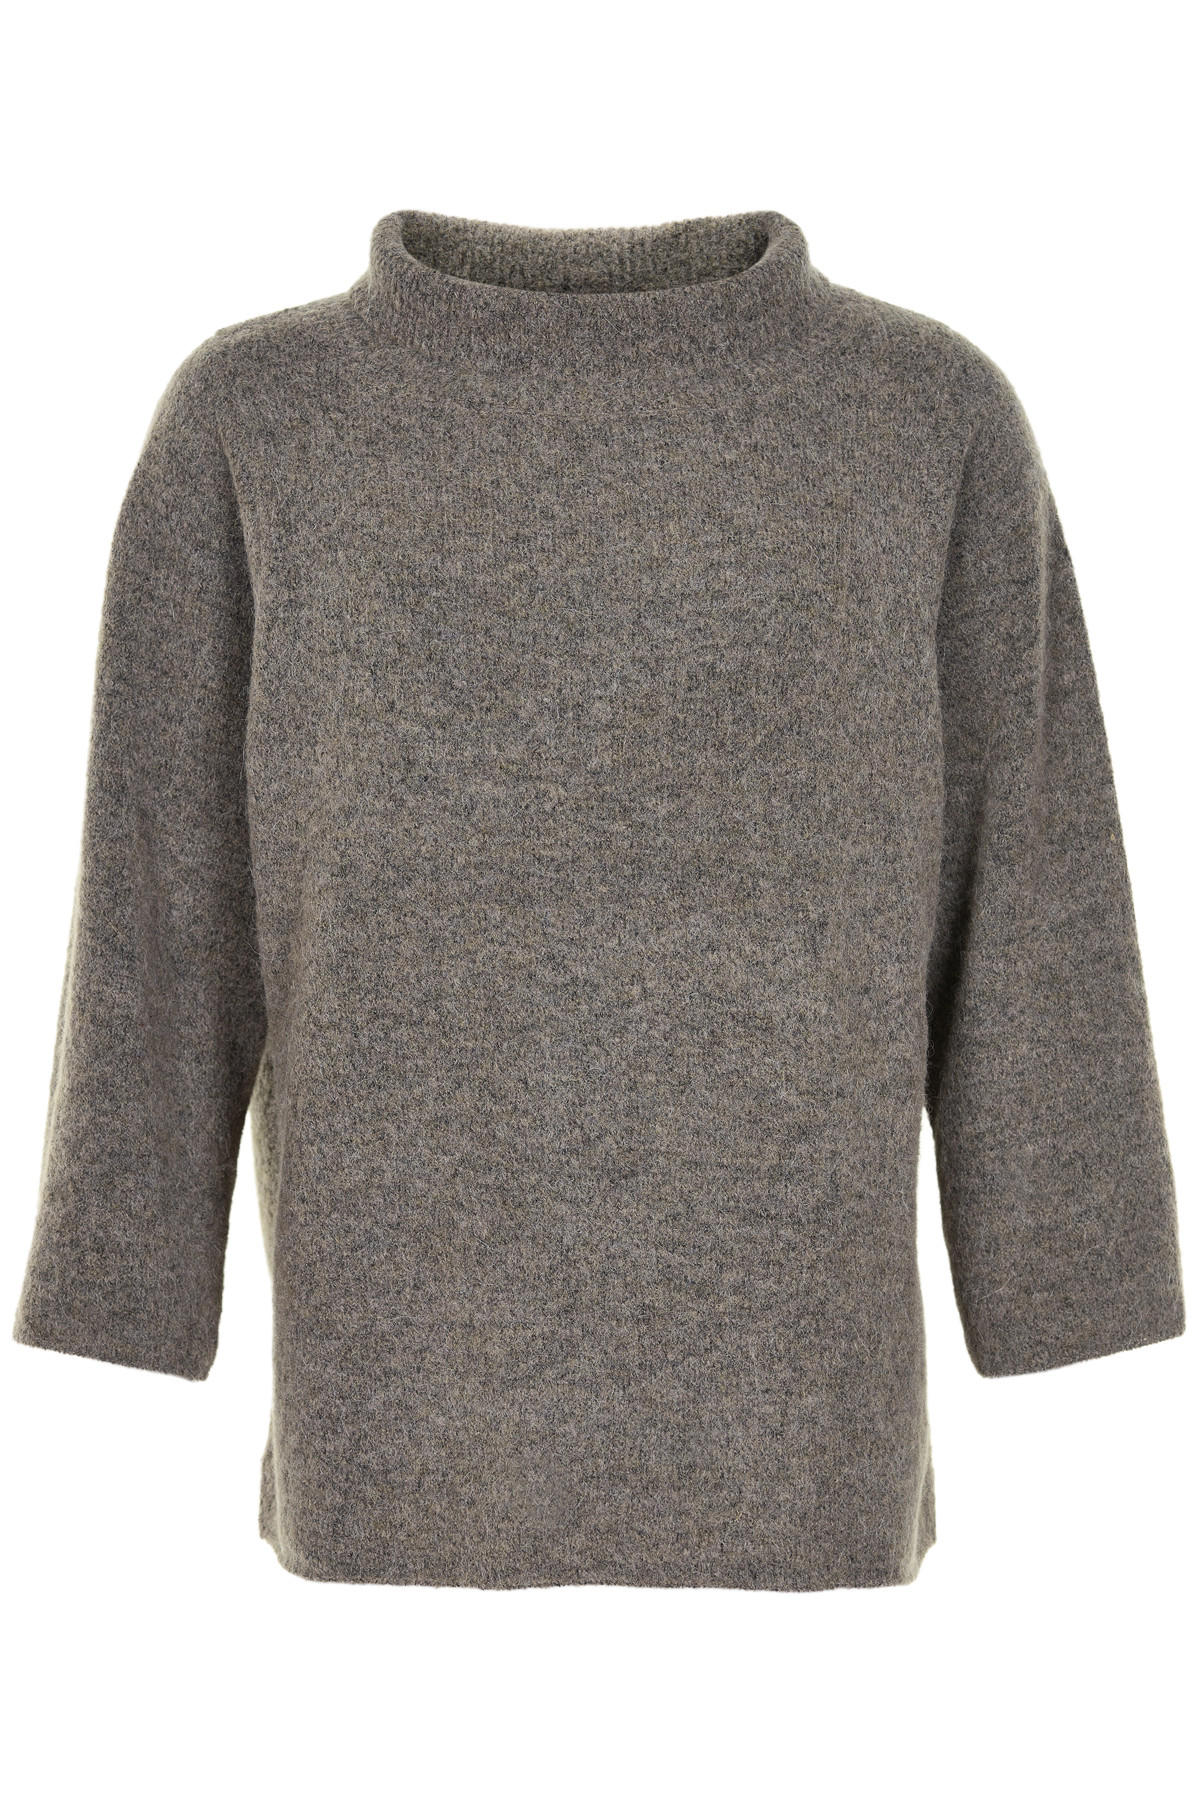 Image of   AND LESS ALELENORE PULLOVER 5519204 W (Walnut, XS)